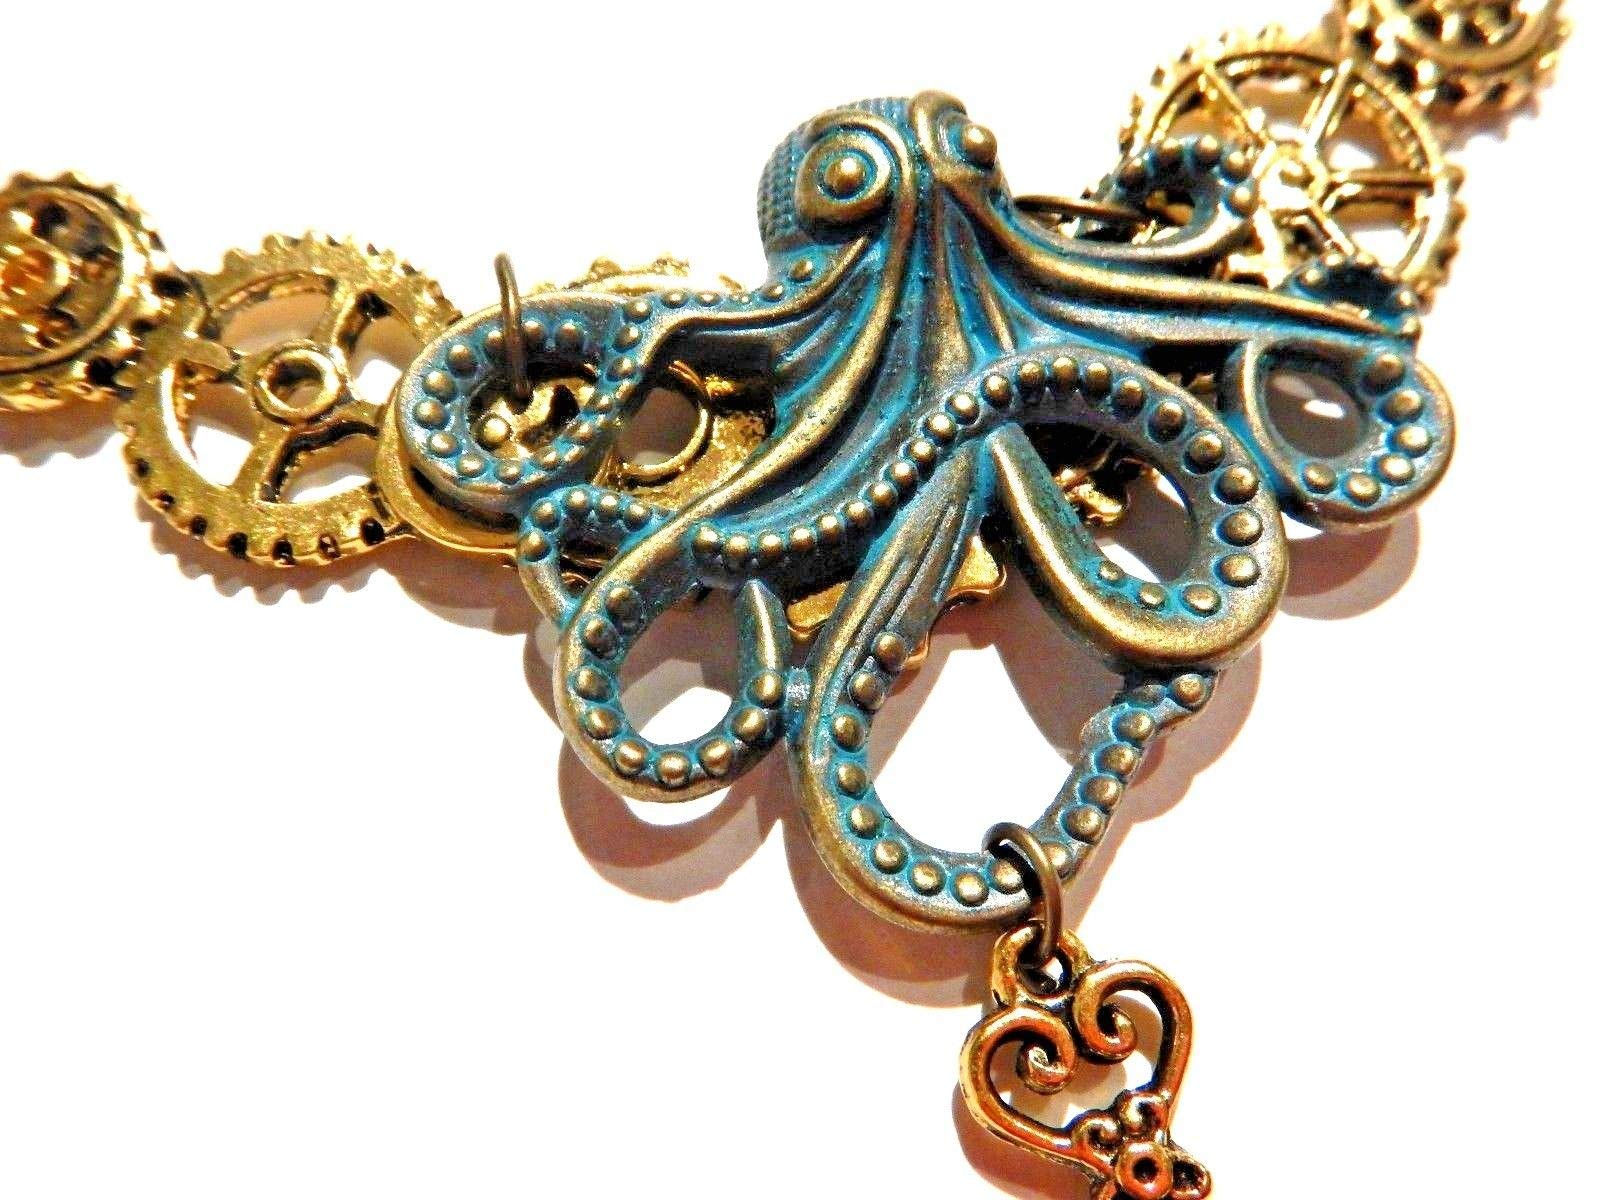 Handmade Steampunk Bronze & Golden Octopus Gears & Skeleton Key Bib Necklace Industrial Clockwork cogs Kraken Pirate 4